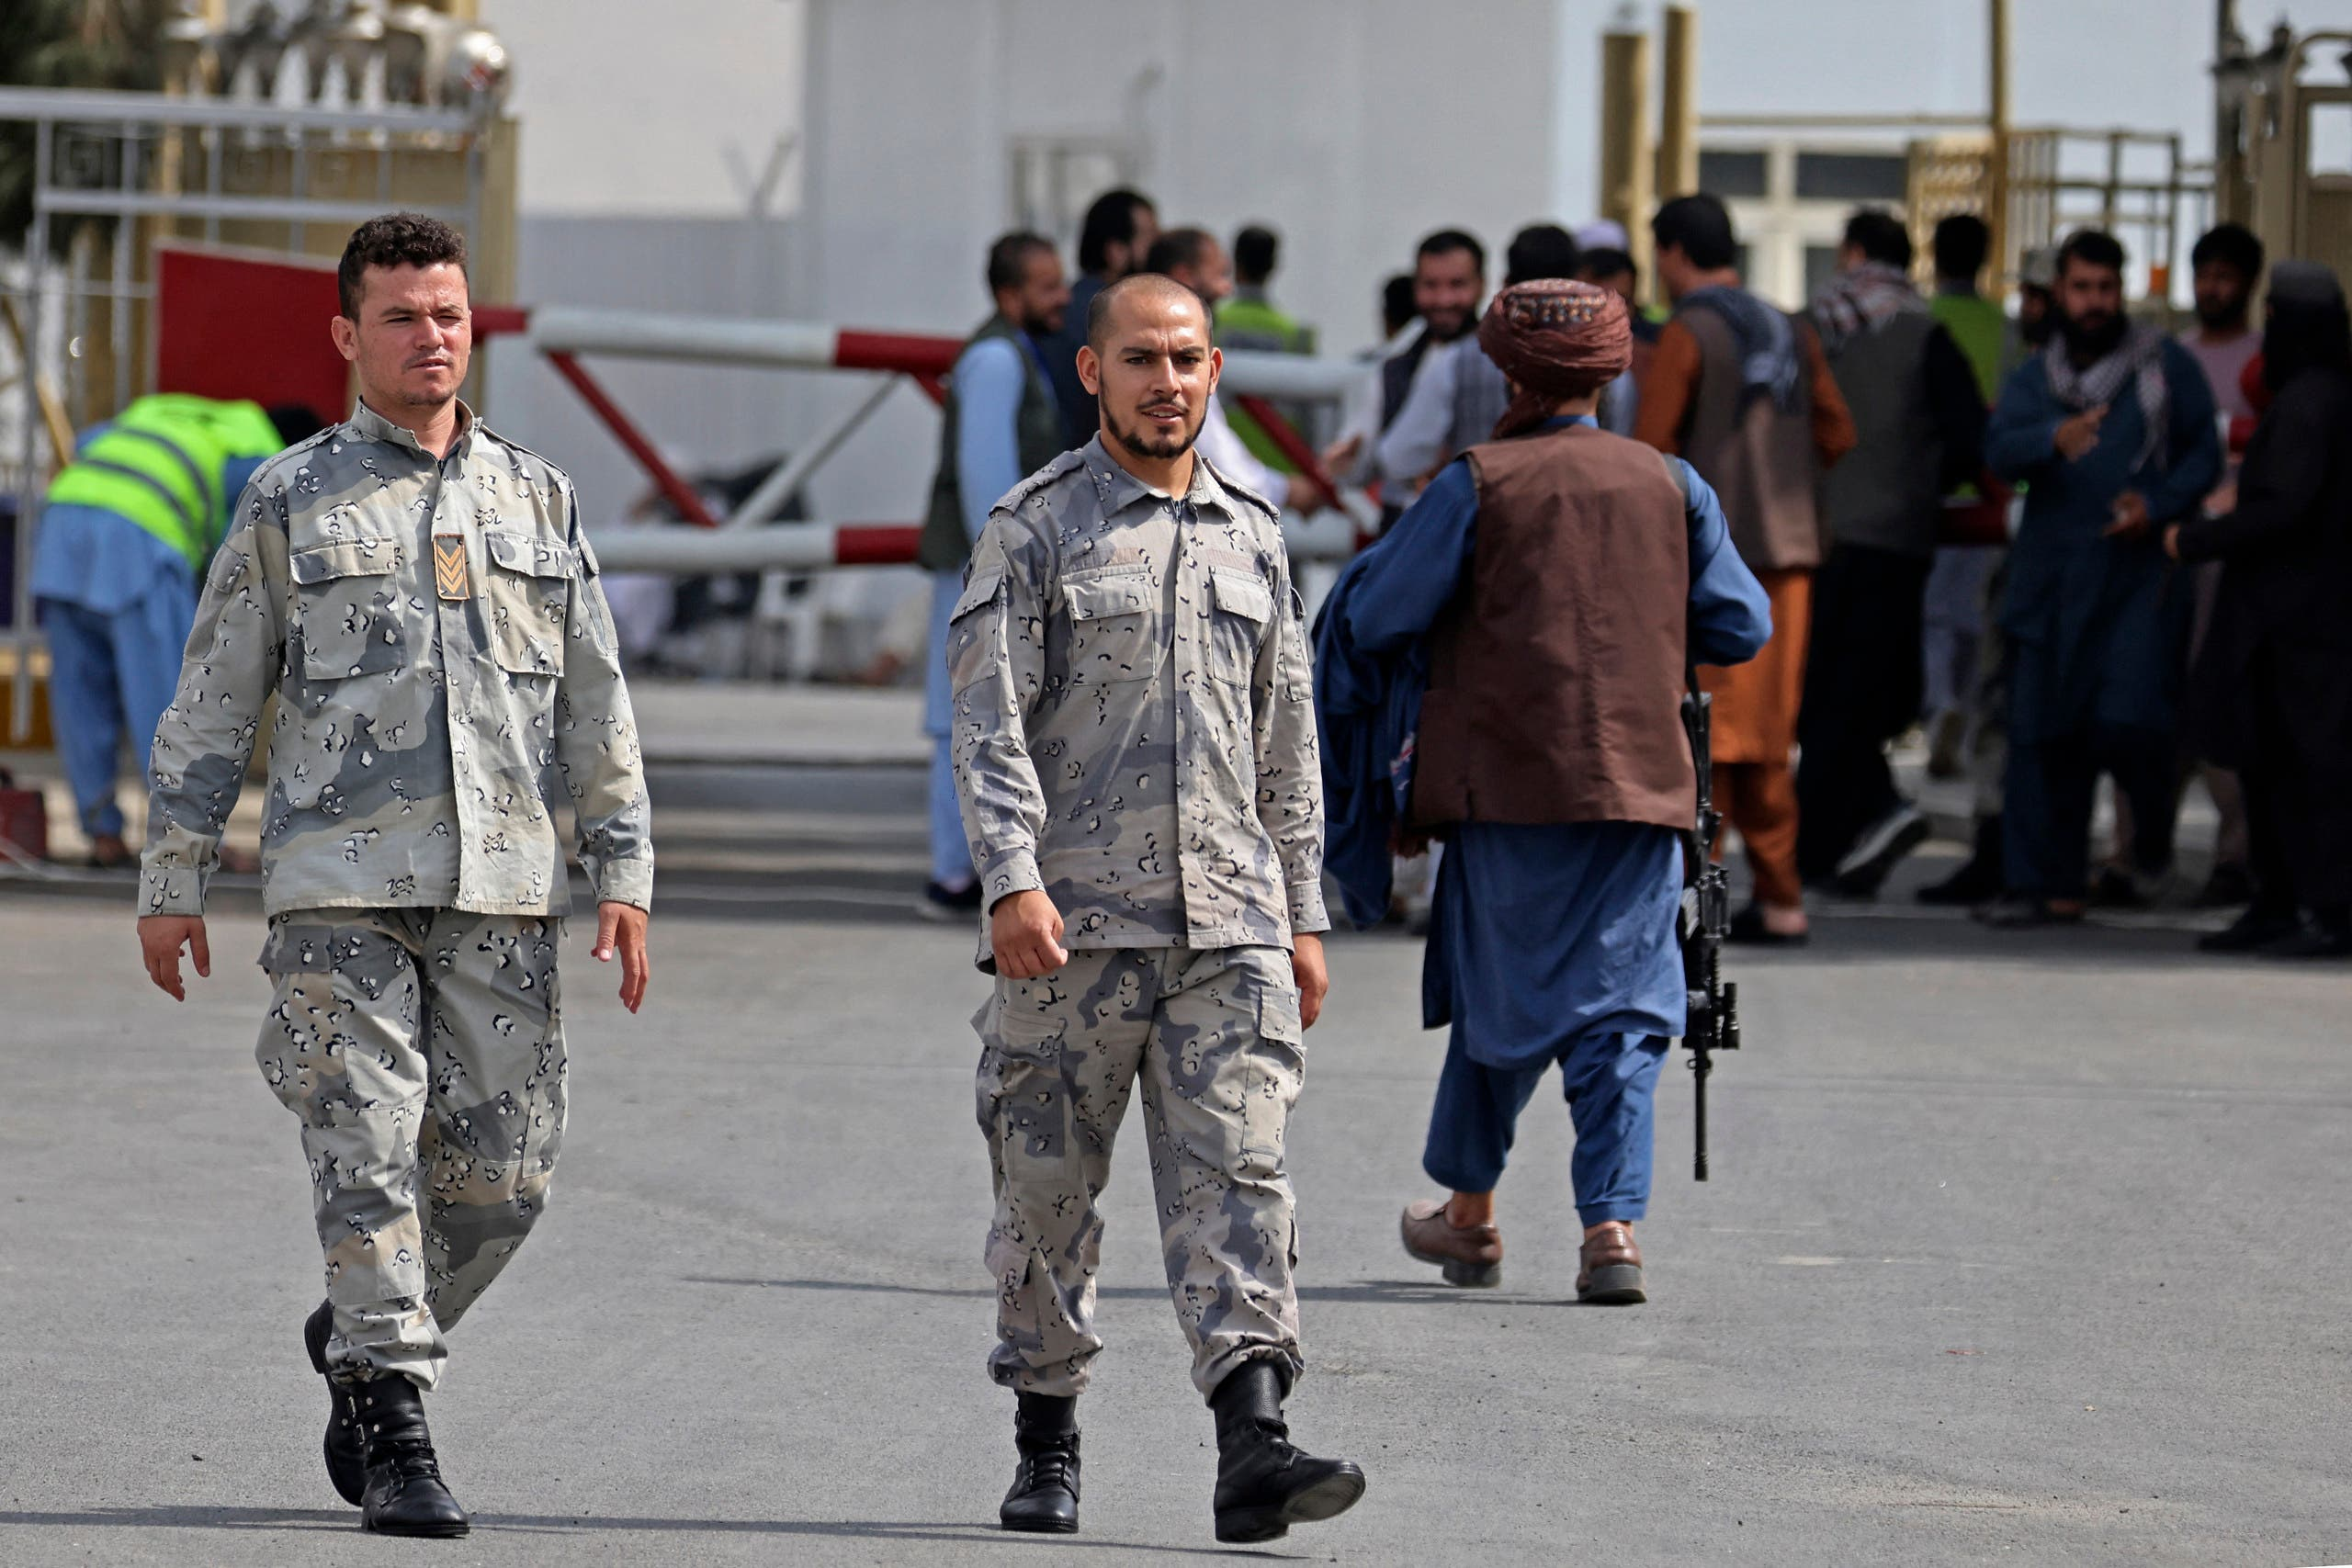 For the first time since the Taliban took power, police appear at Kabul airport